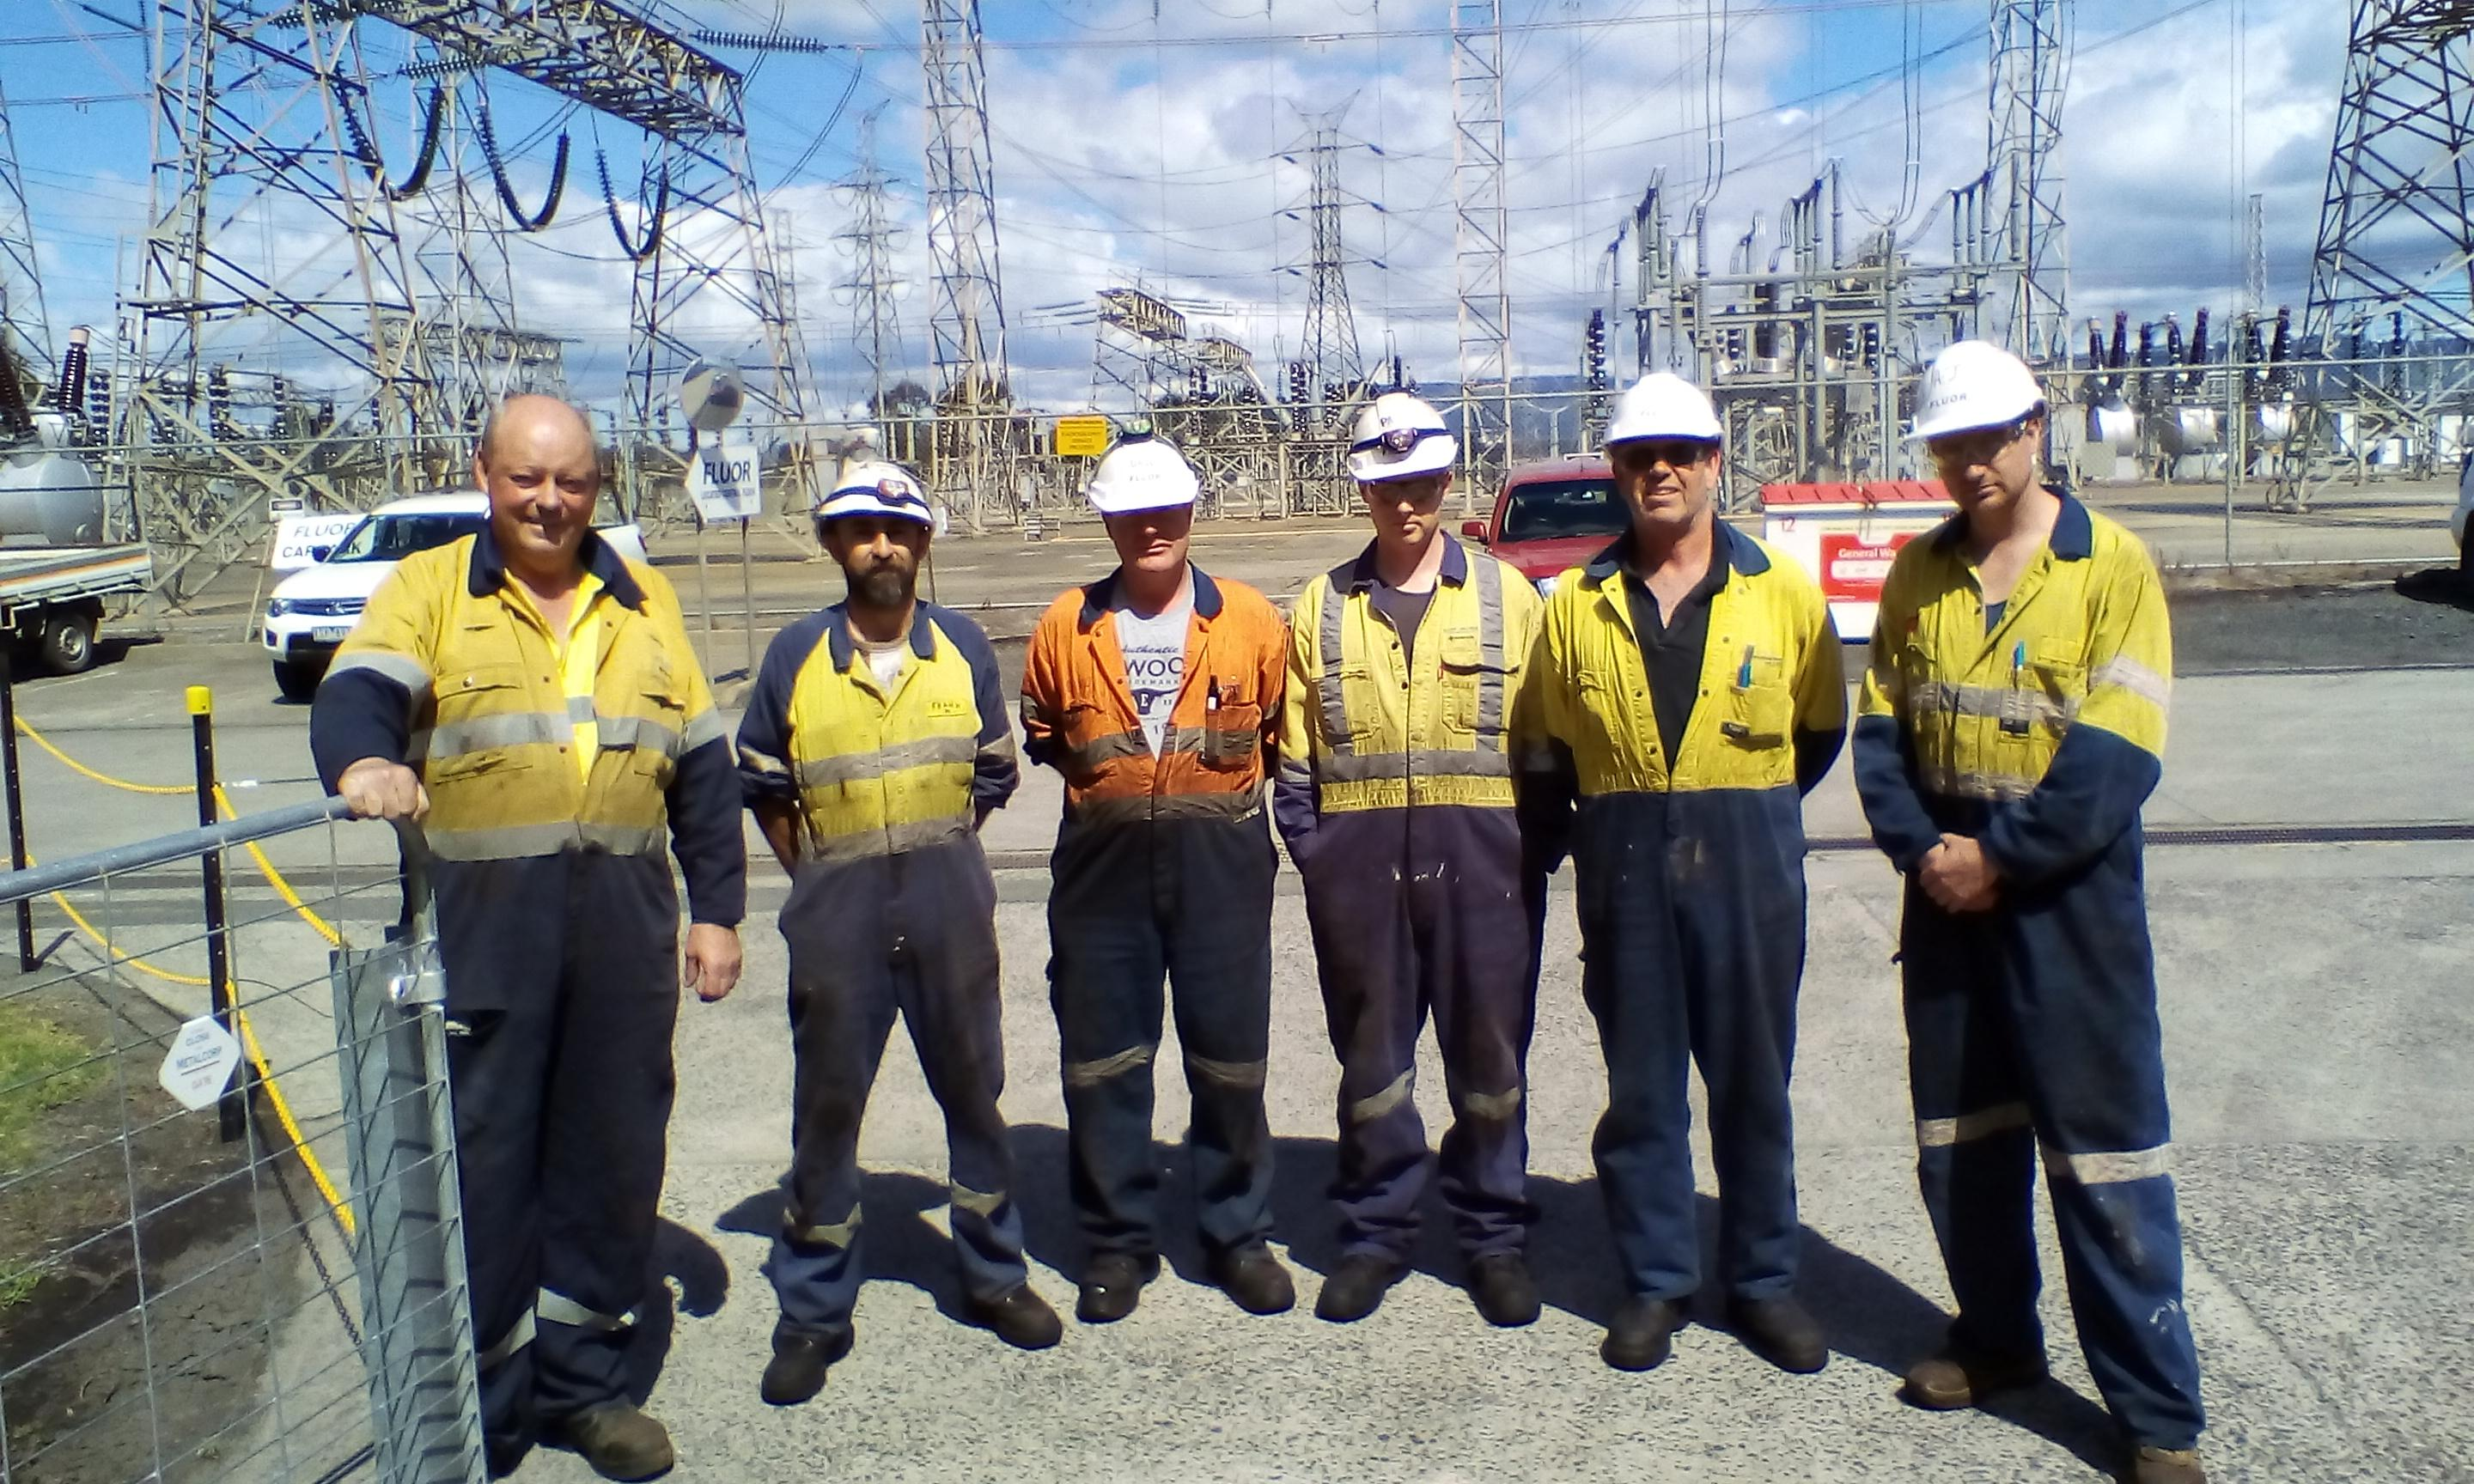 Hazelwood_maintenance_workers_from_Fluor.jpeg